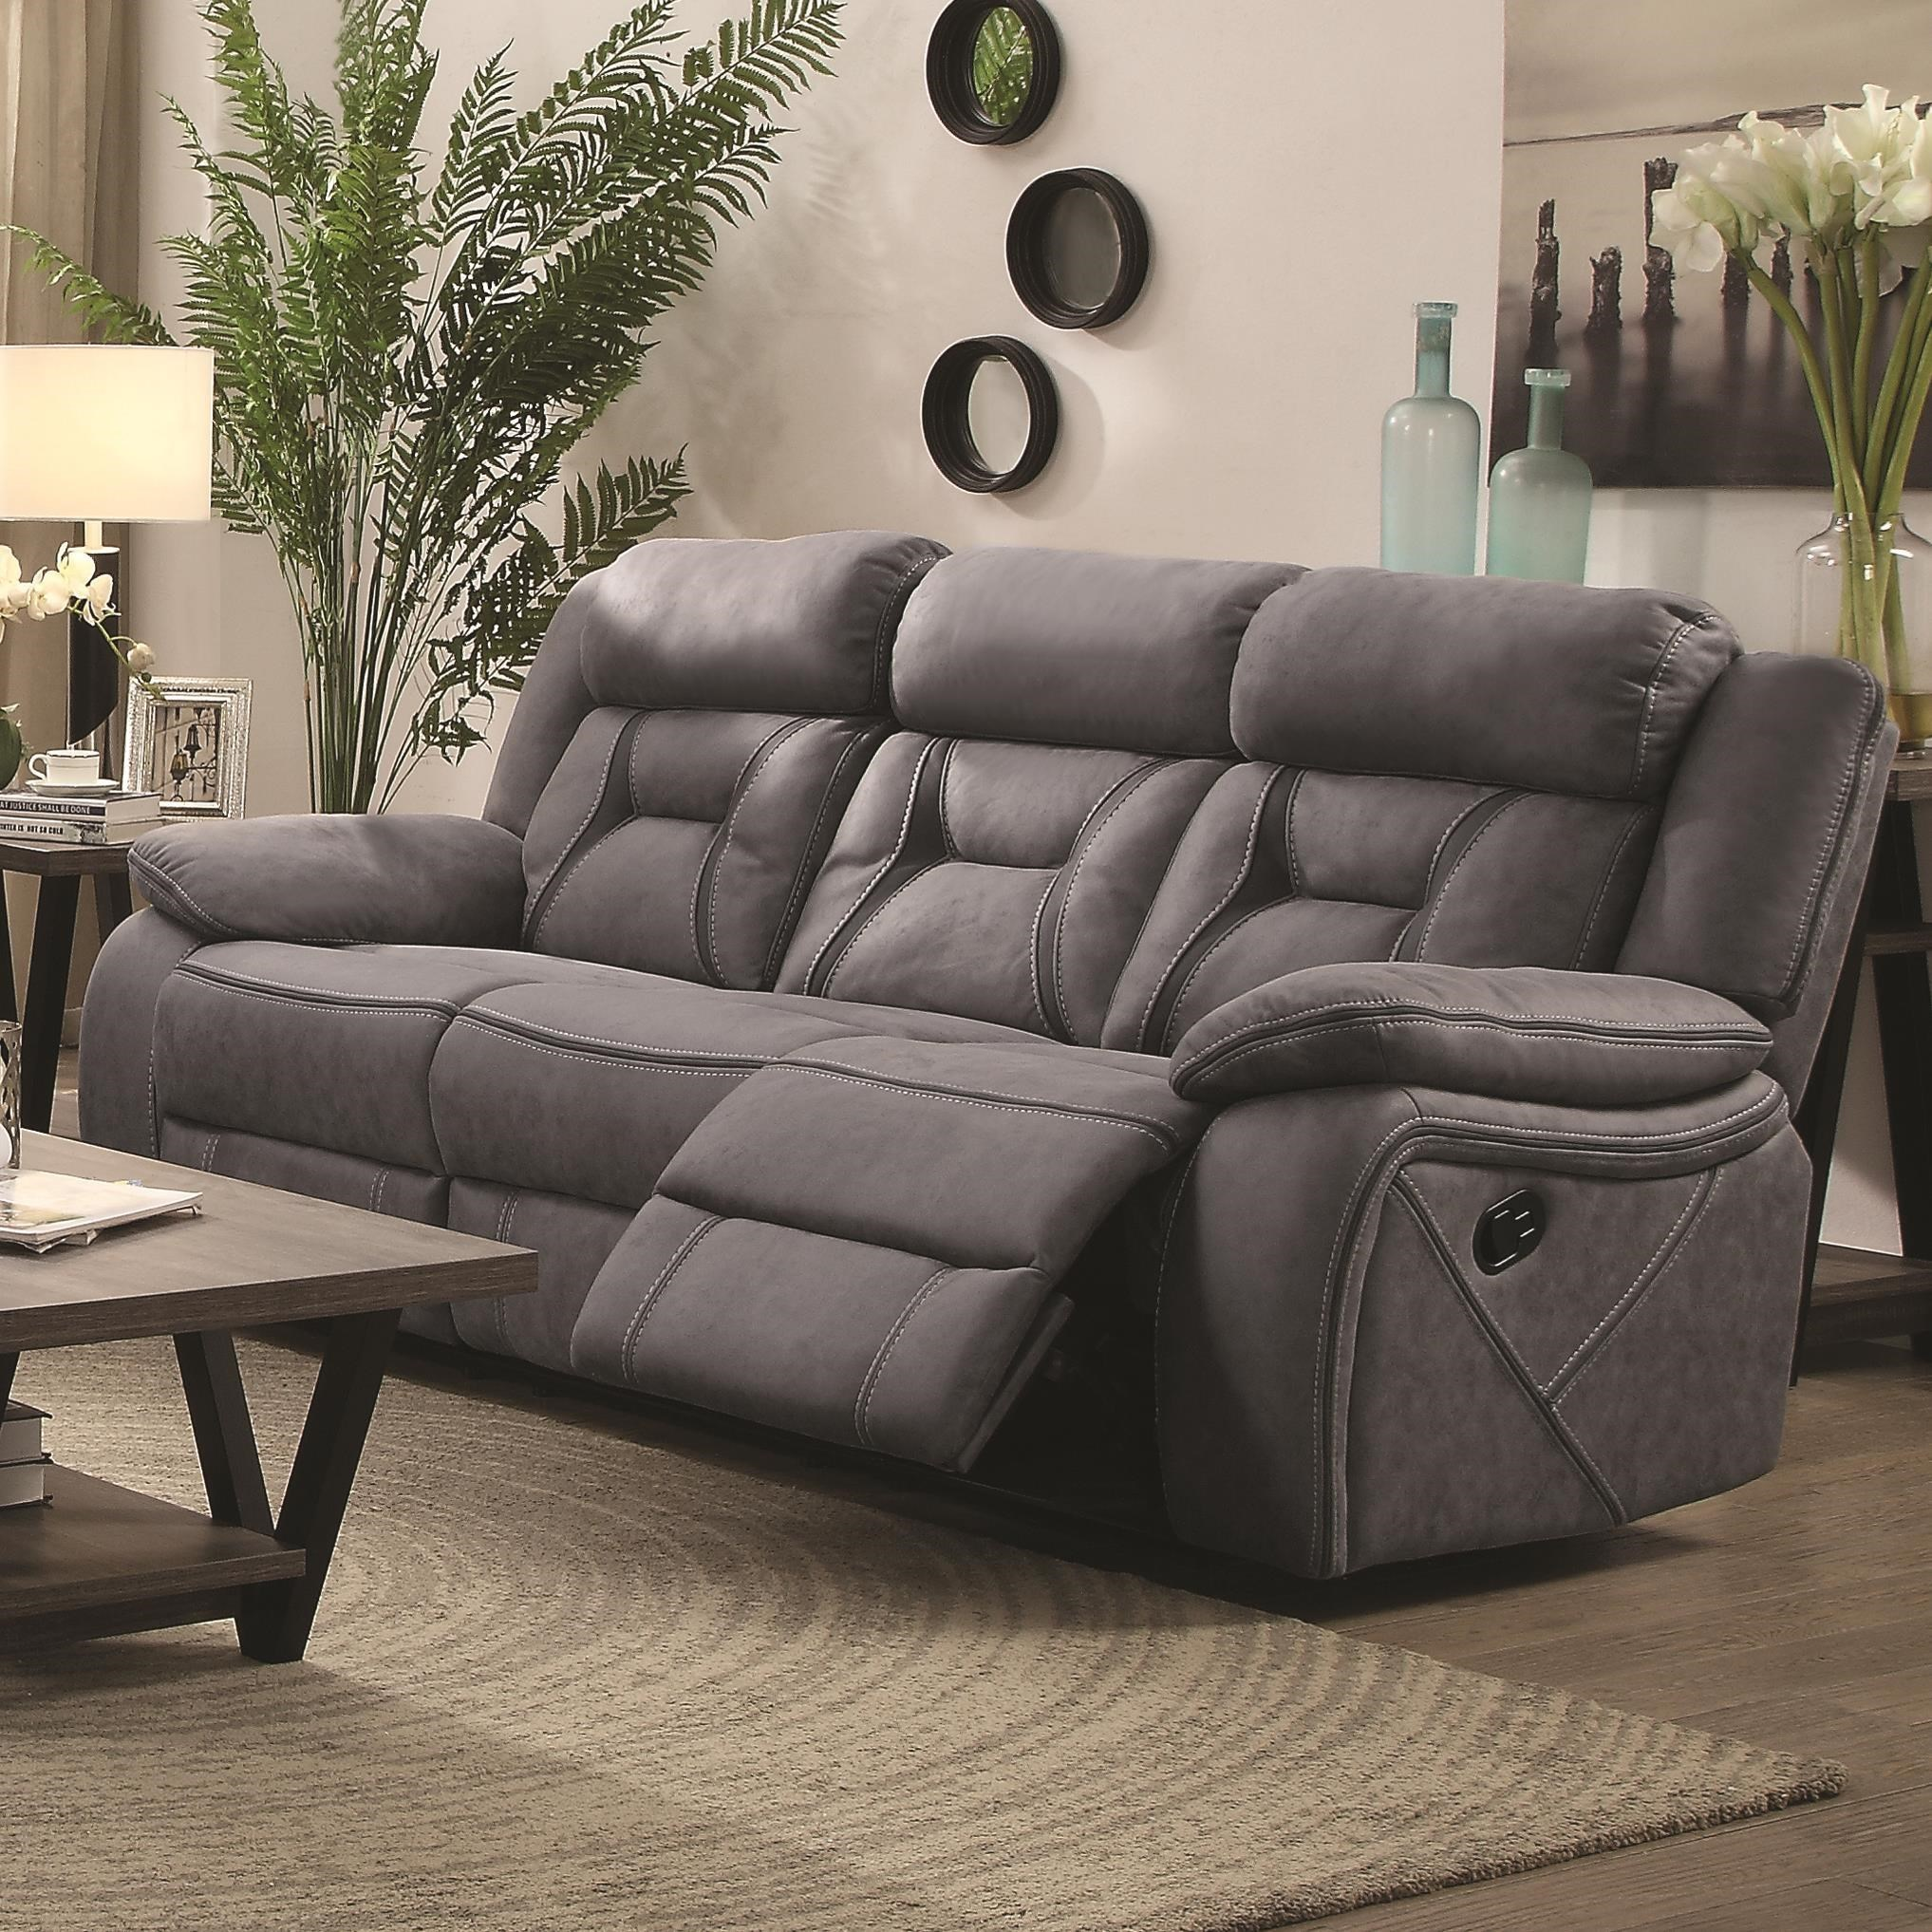 Picture of: City Furniture City Furniture Recliner Sofas